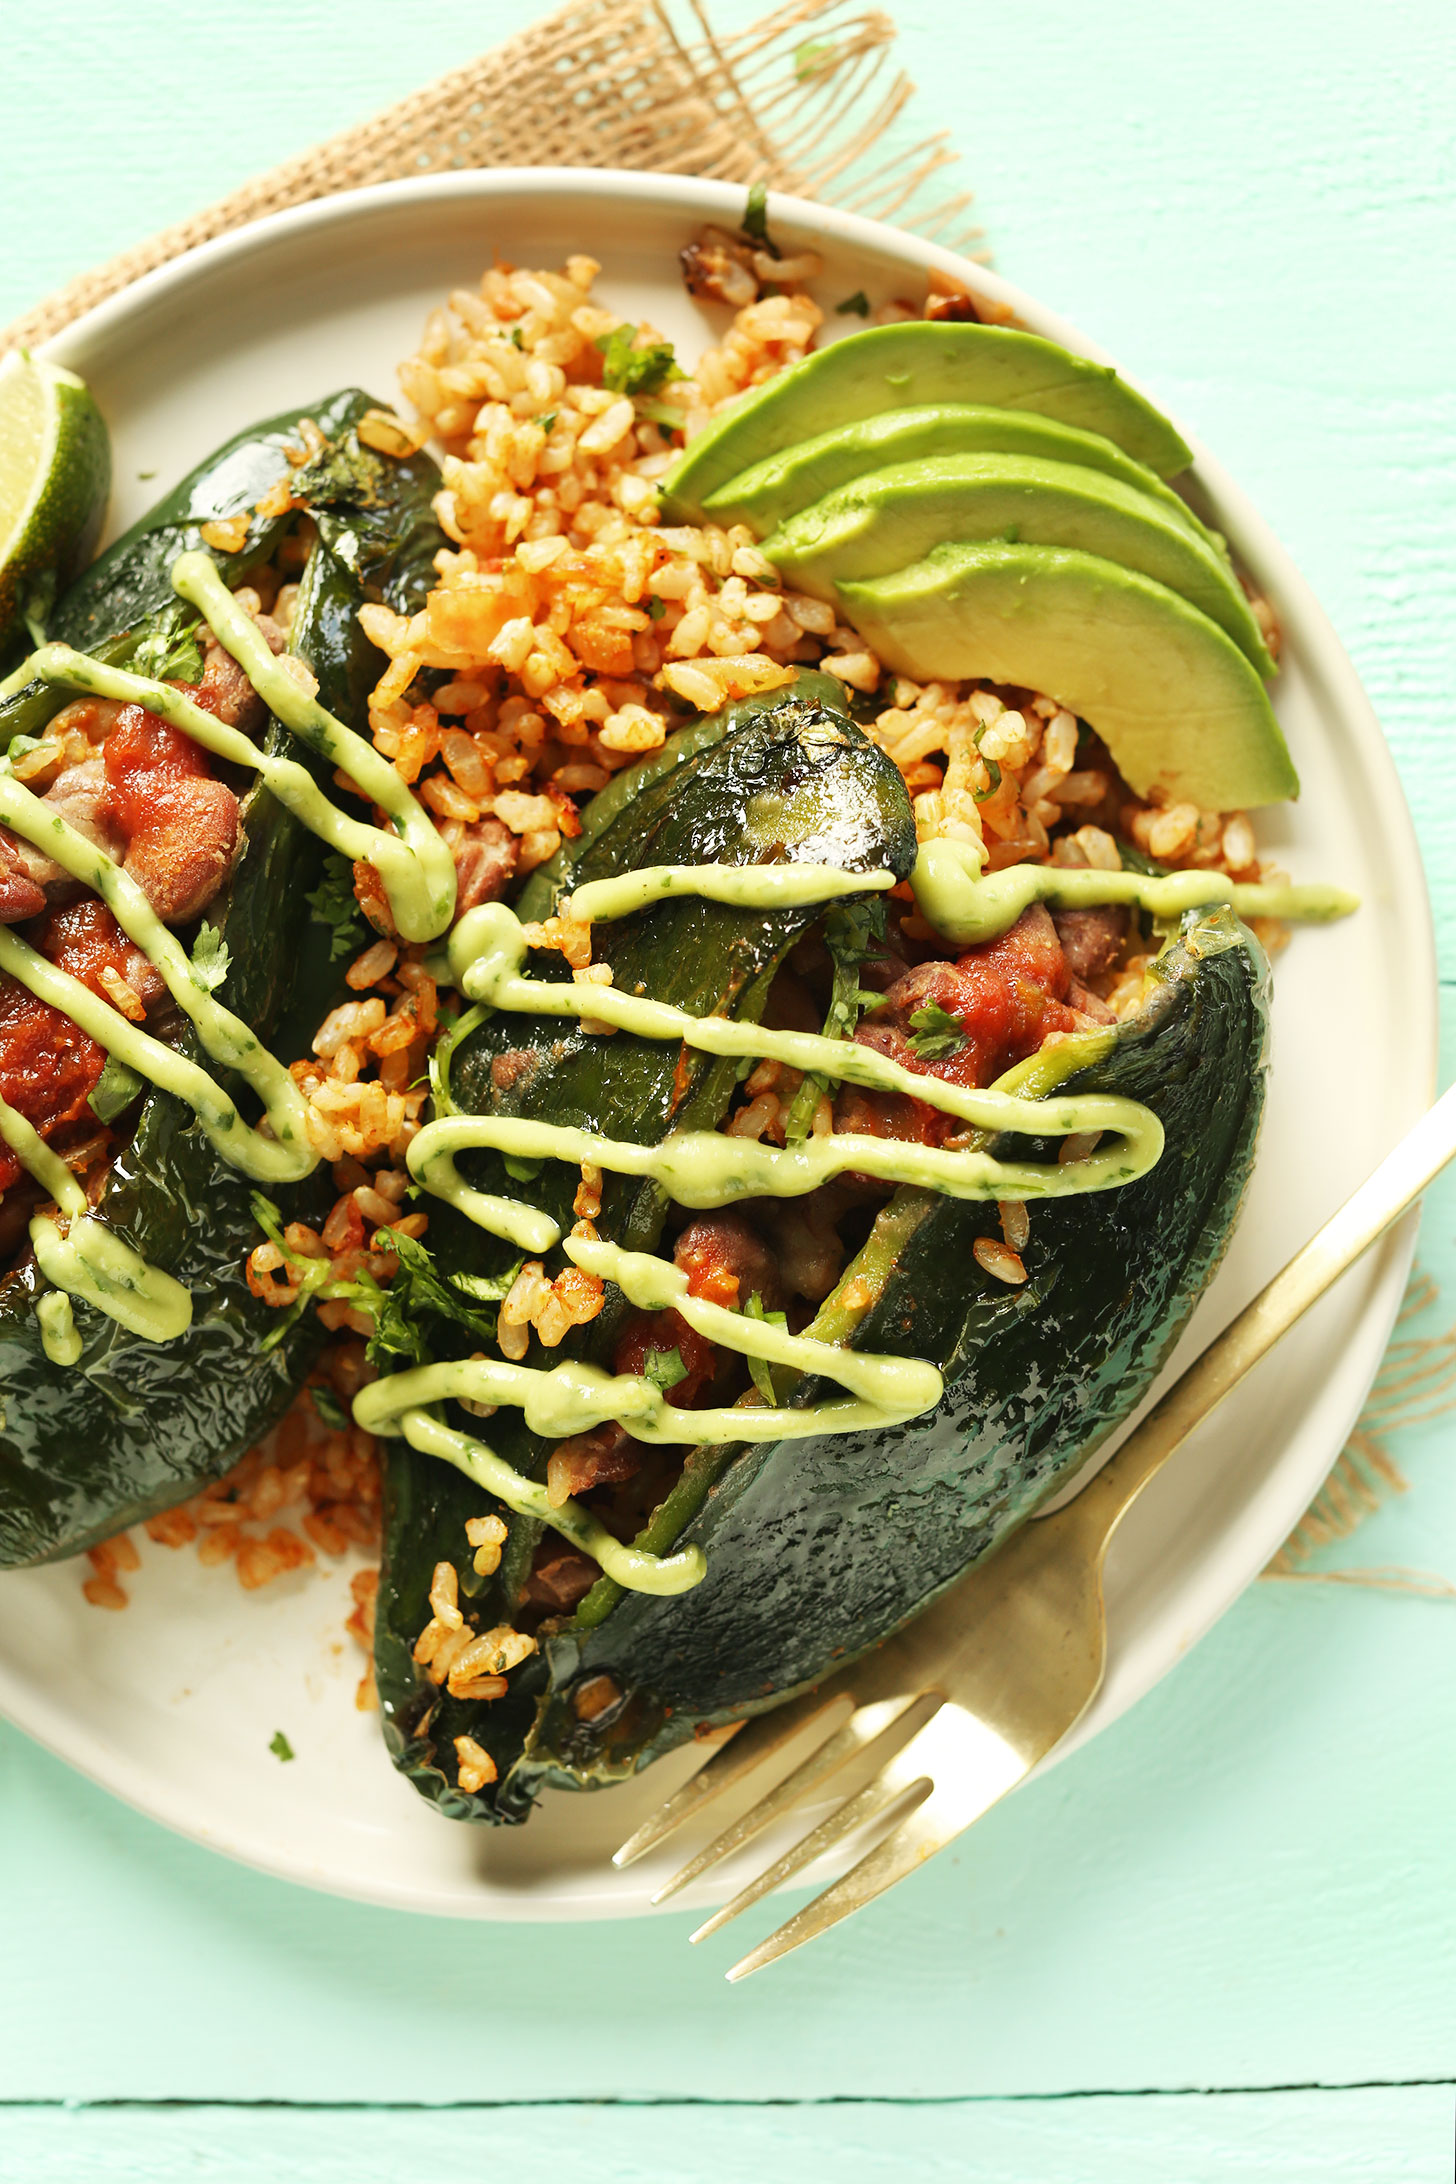 Delicious plate of gluten-free vegan Stuffed Poblano Peppers with avocado